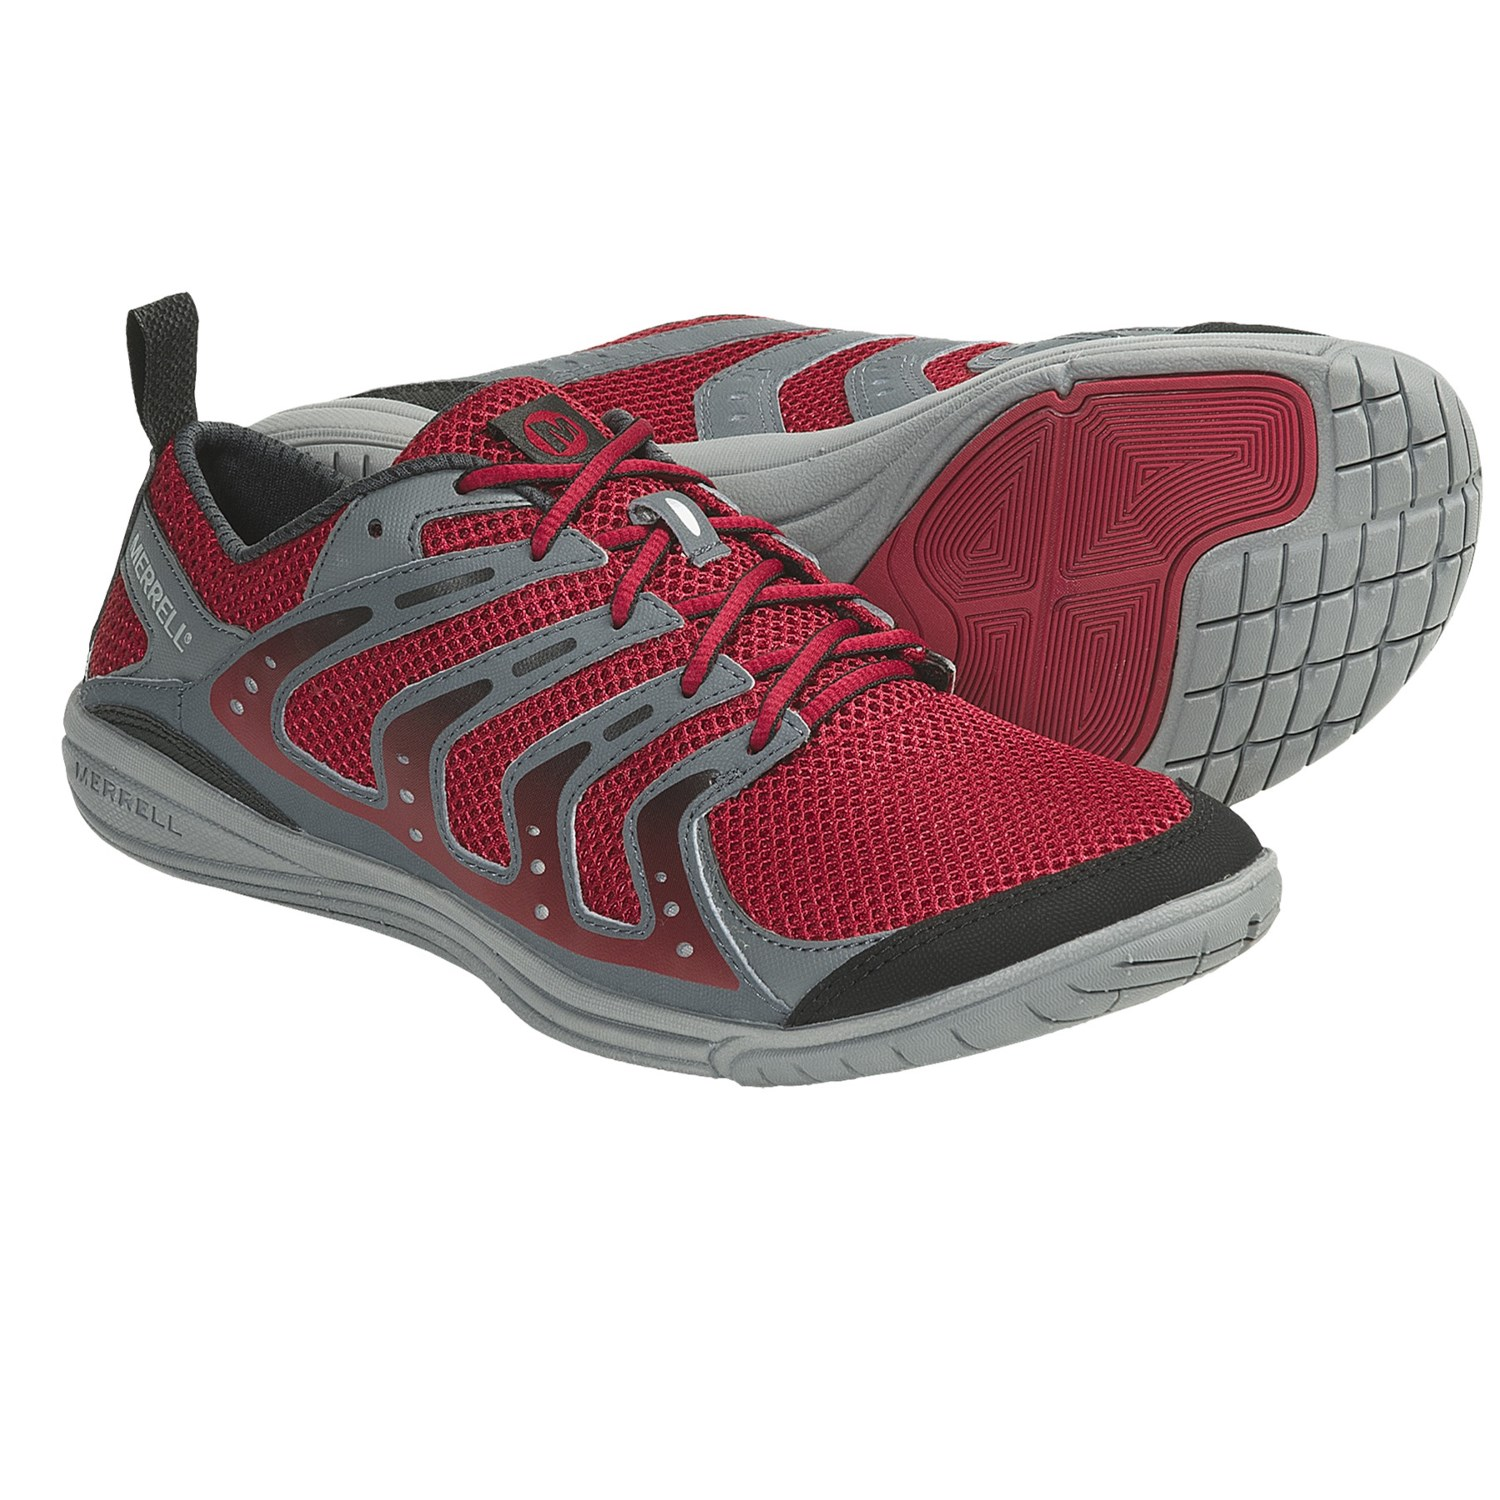 merrell barefoot bare access running shoes minimalist